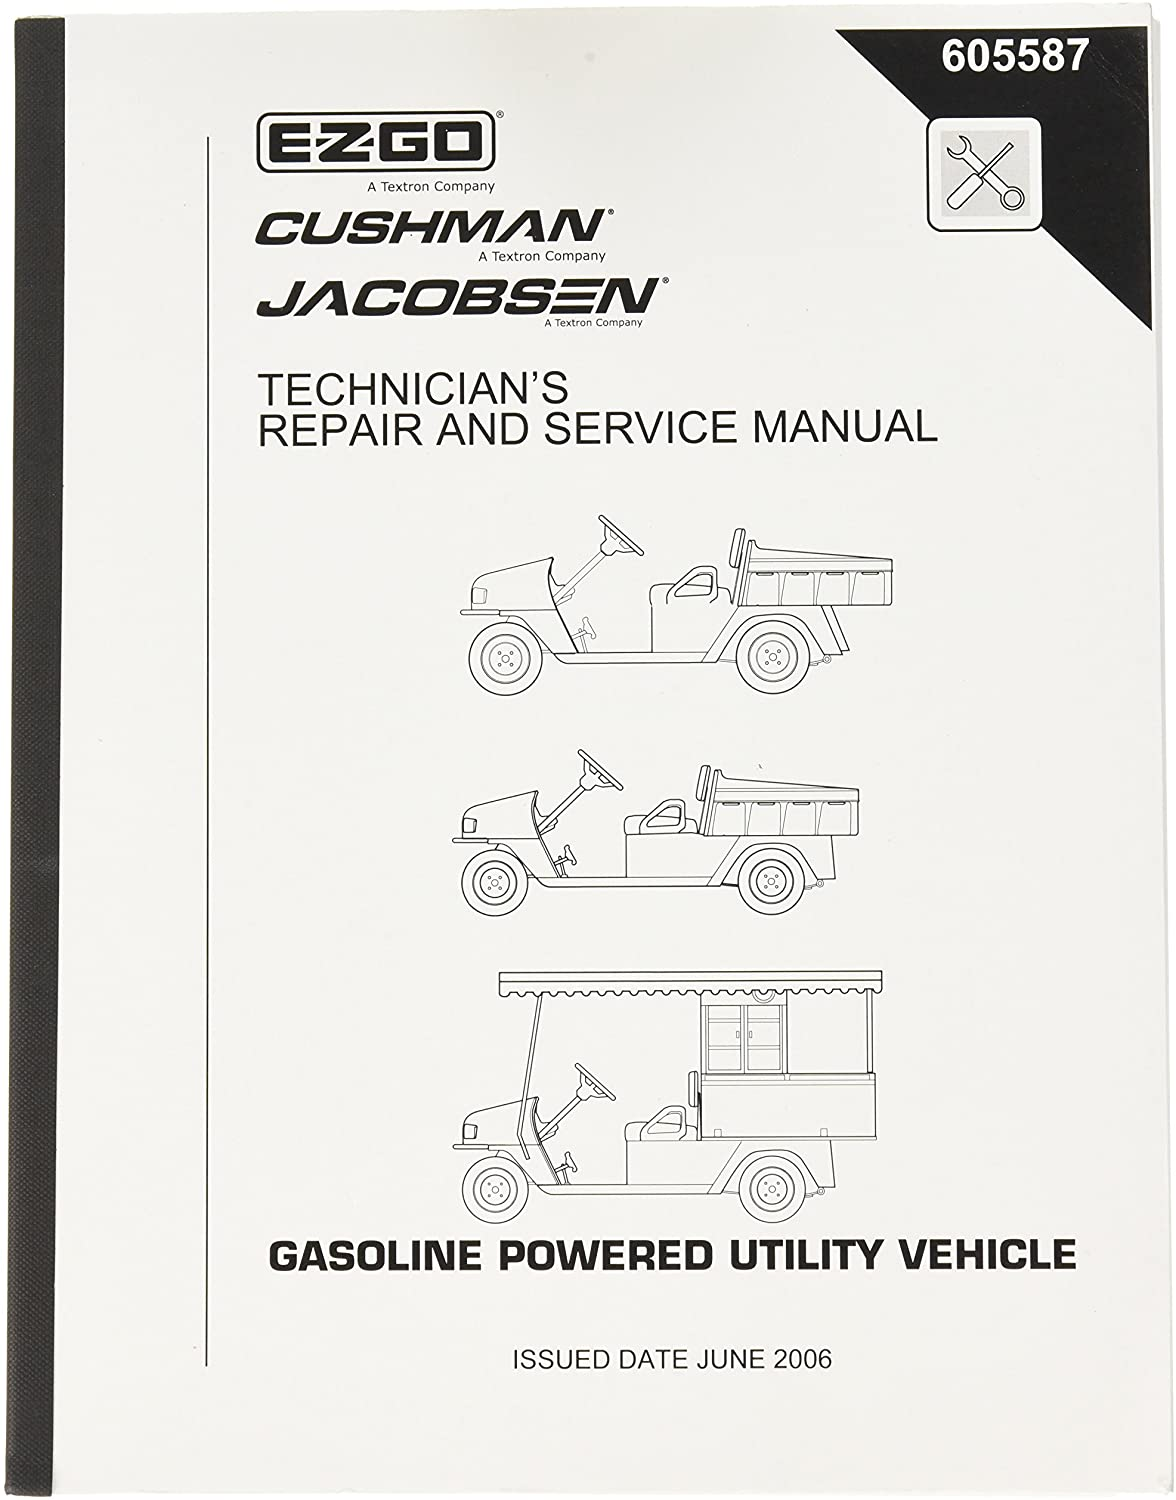 EZGO 605587 2006 Current Technician's Repair Manual for MPT 800, 1200CE, CARB